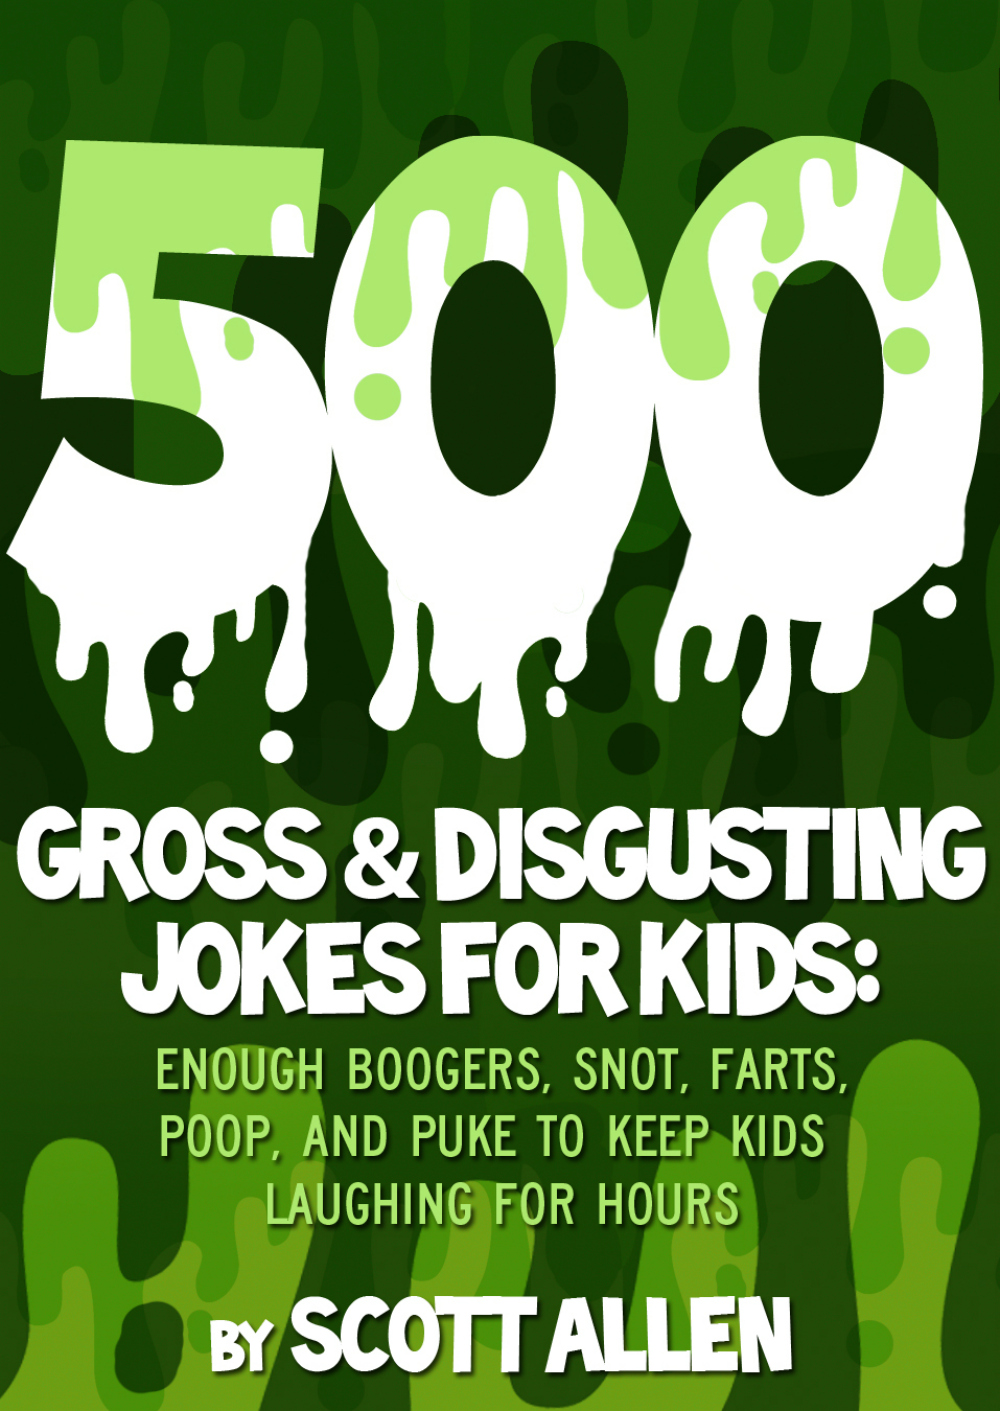 500 GROSS & DISGUSTING JOKES FOR KIDS By: Scott Allen